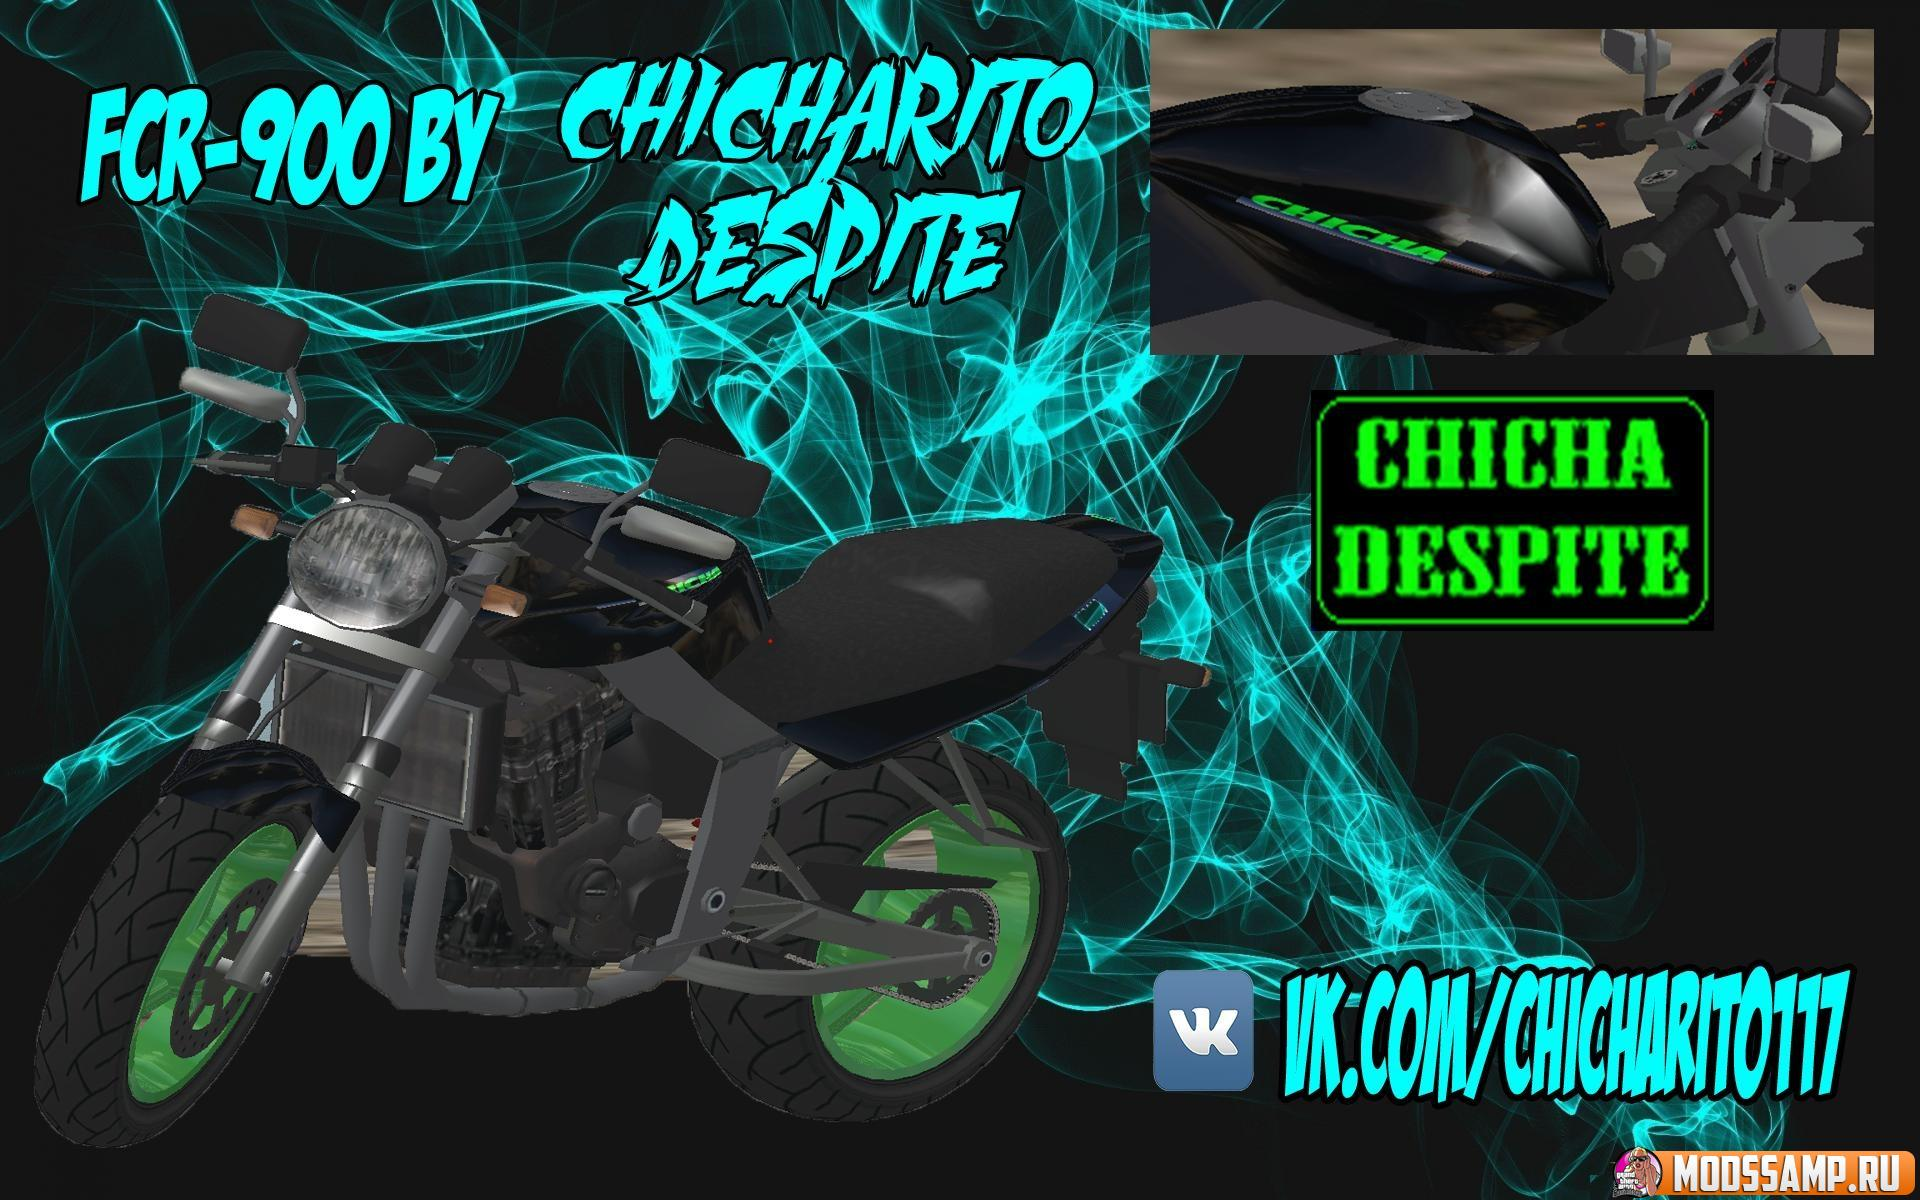 FCR-900 от Chicharito Despite для GTA:SA